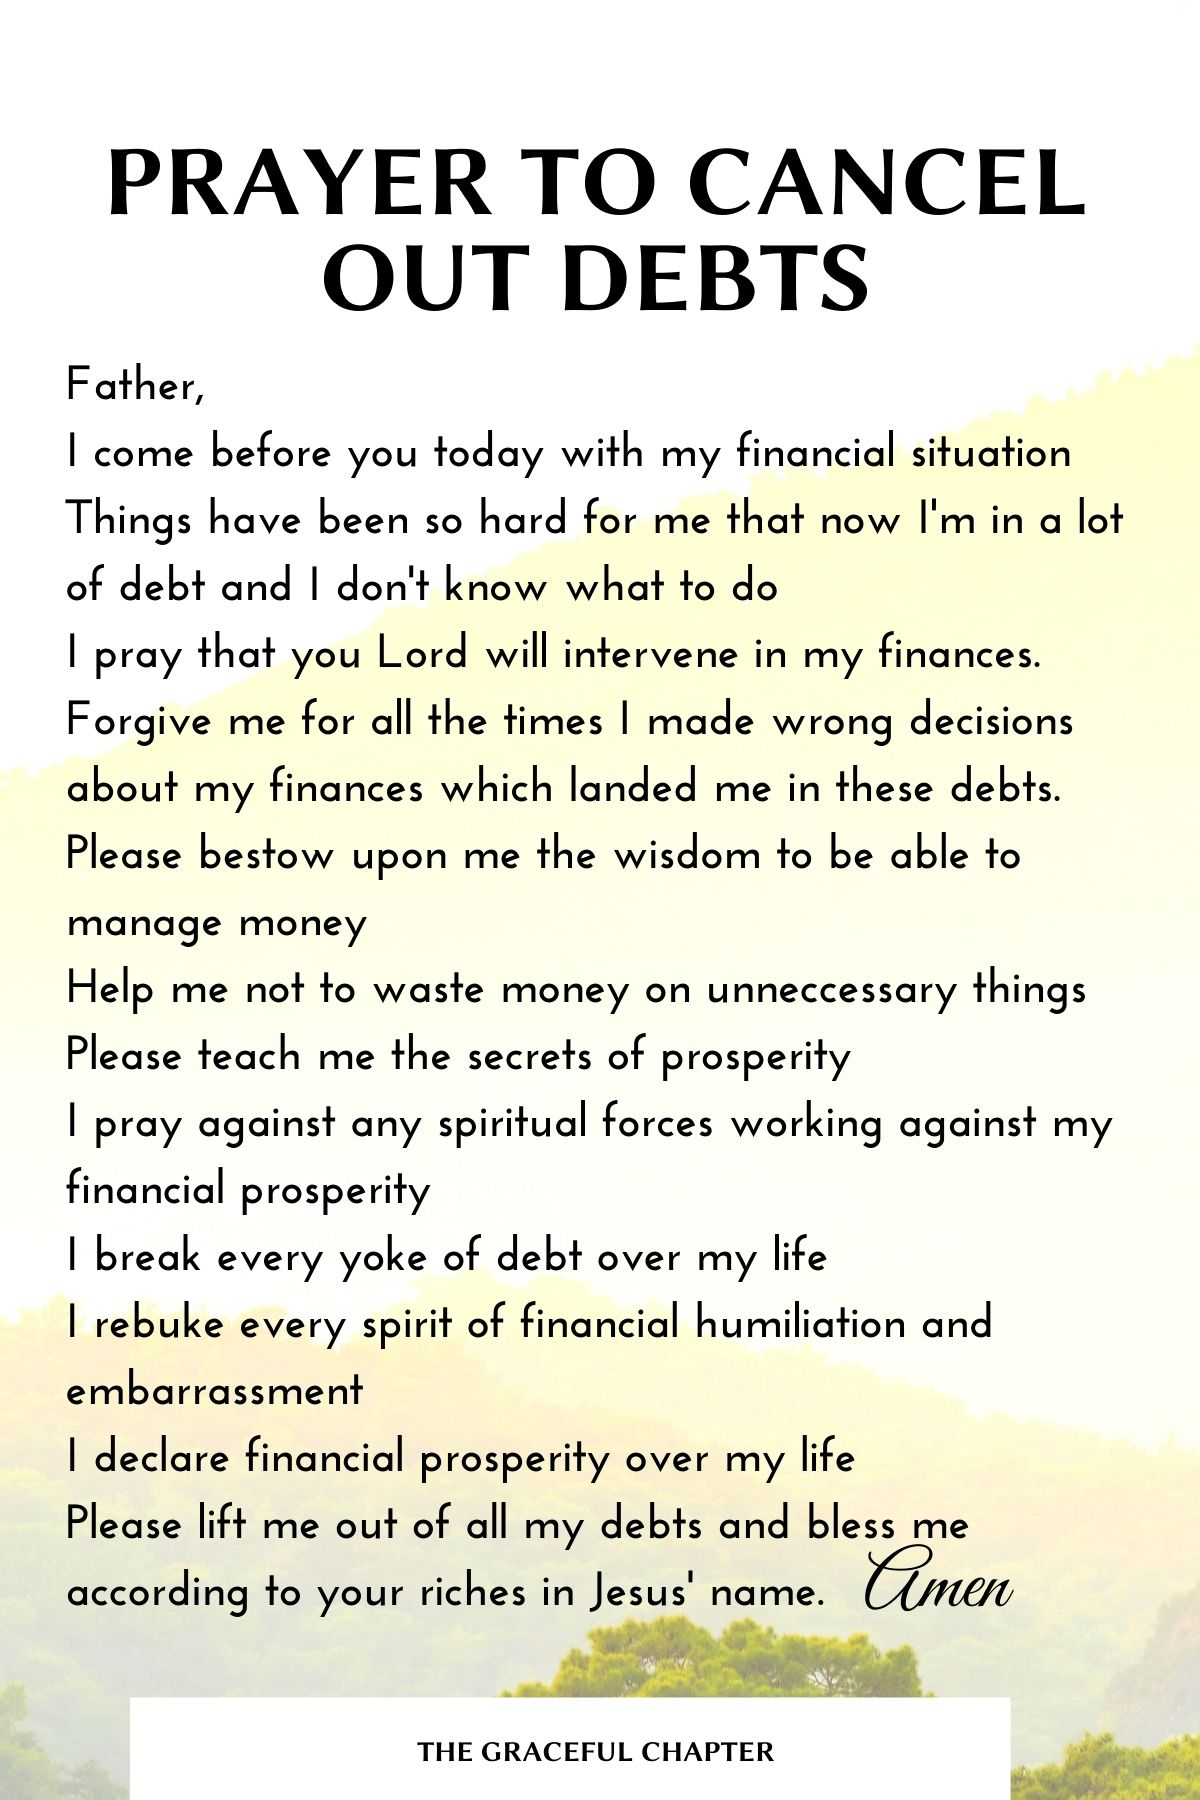 Prayer to cancel out debts